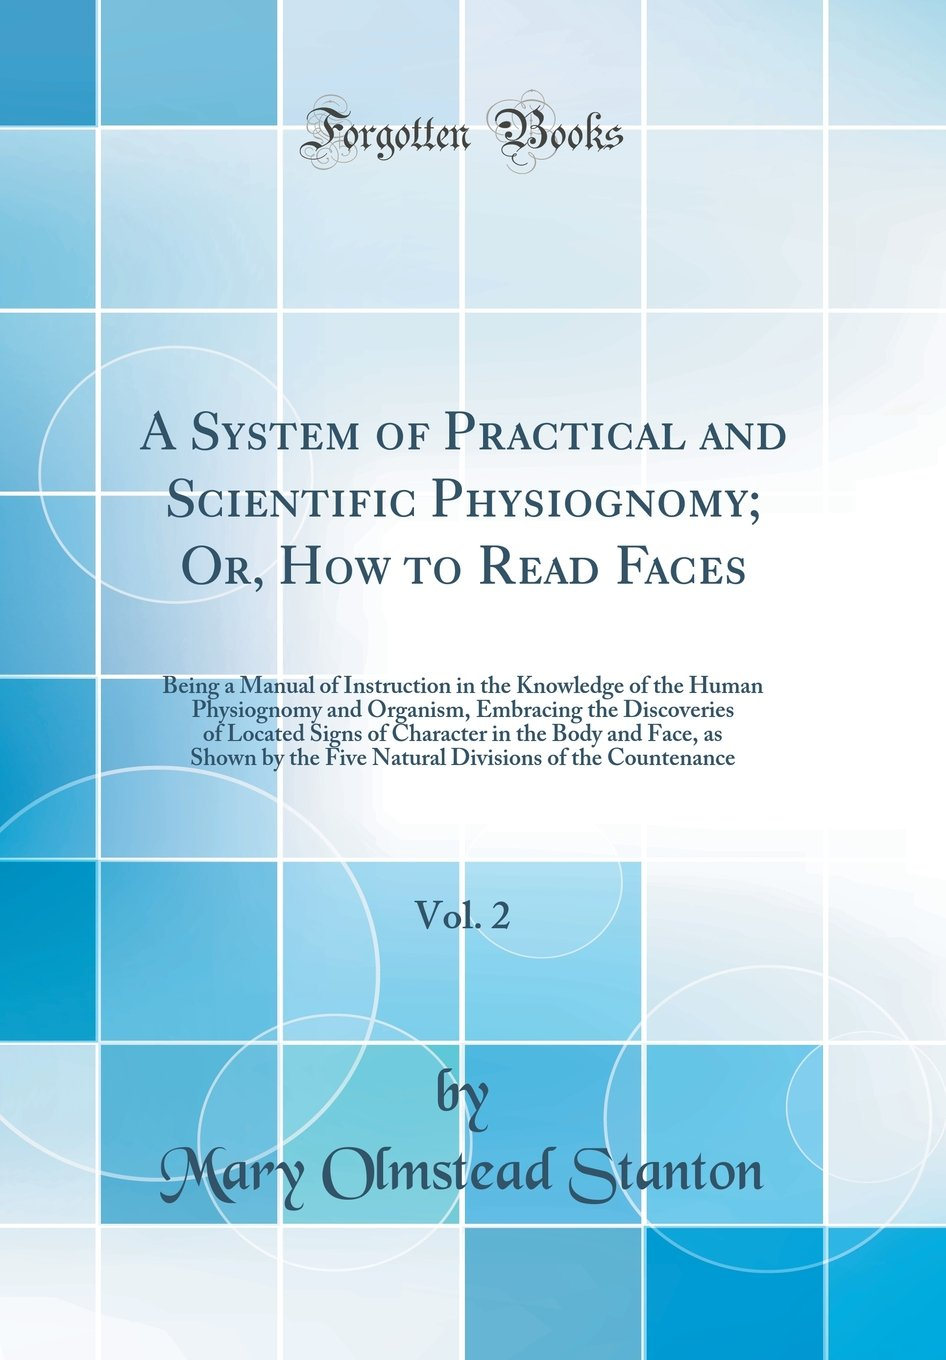 Download A System of Practical and Scientific Physiognomy; Or, How to Read Faces, Vol. 2: Being a Manual of Instruction in the Knowledge of the Human ... of Character in the Body and Face, as Shown b PDF